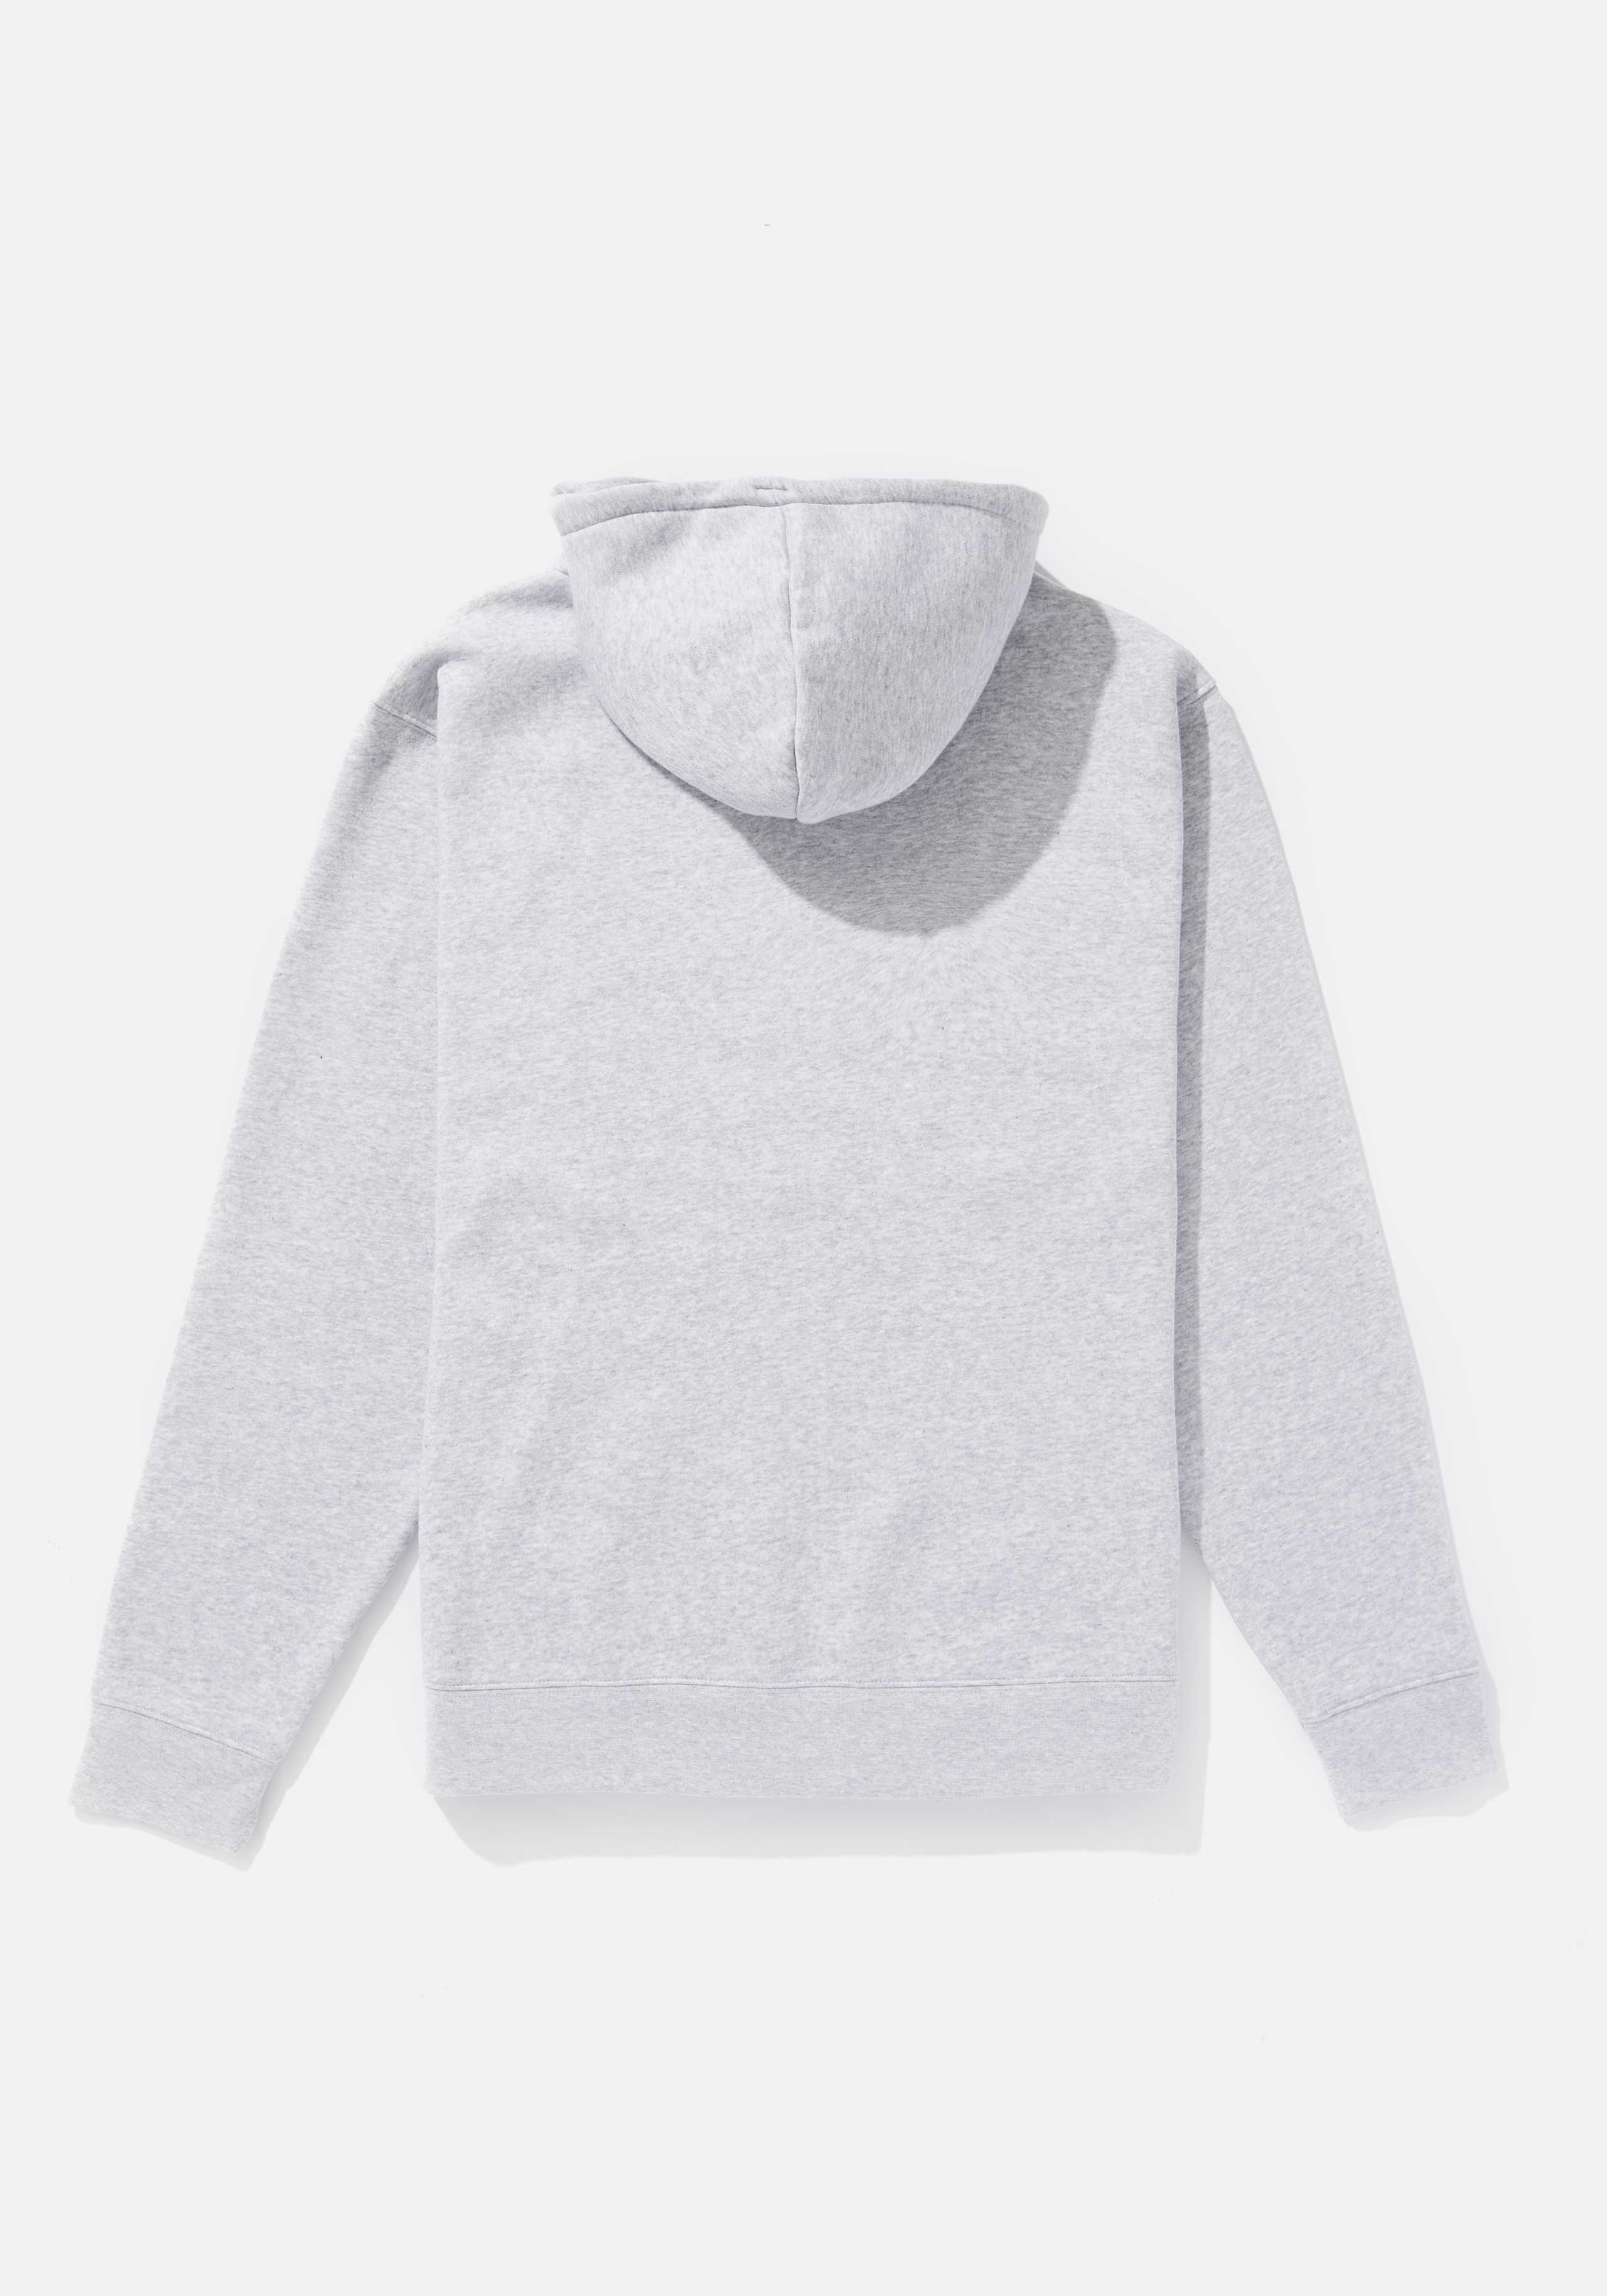 mki relaxed basic hoody 2